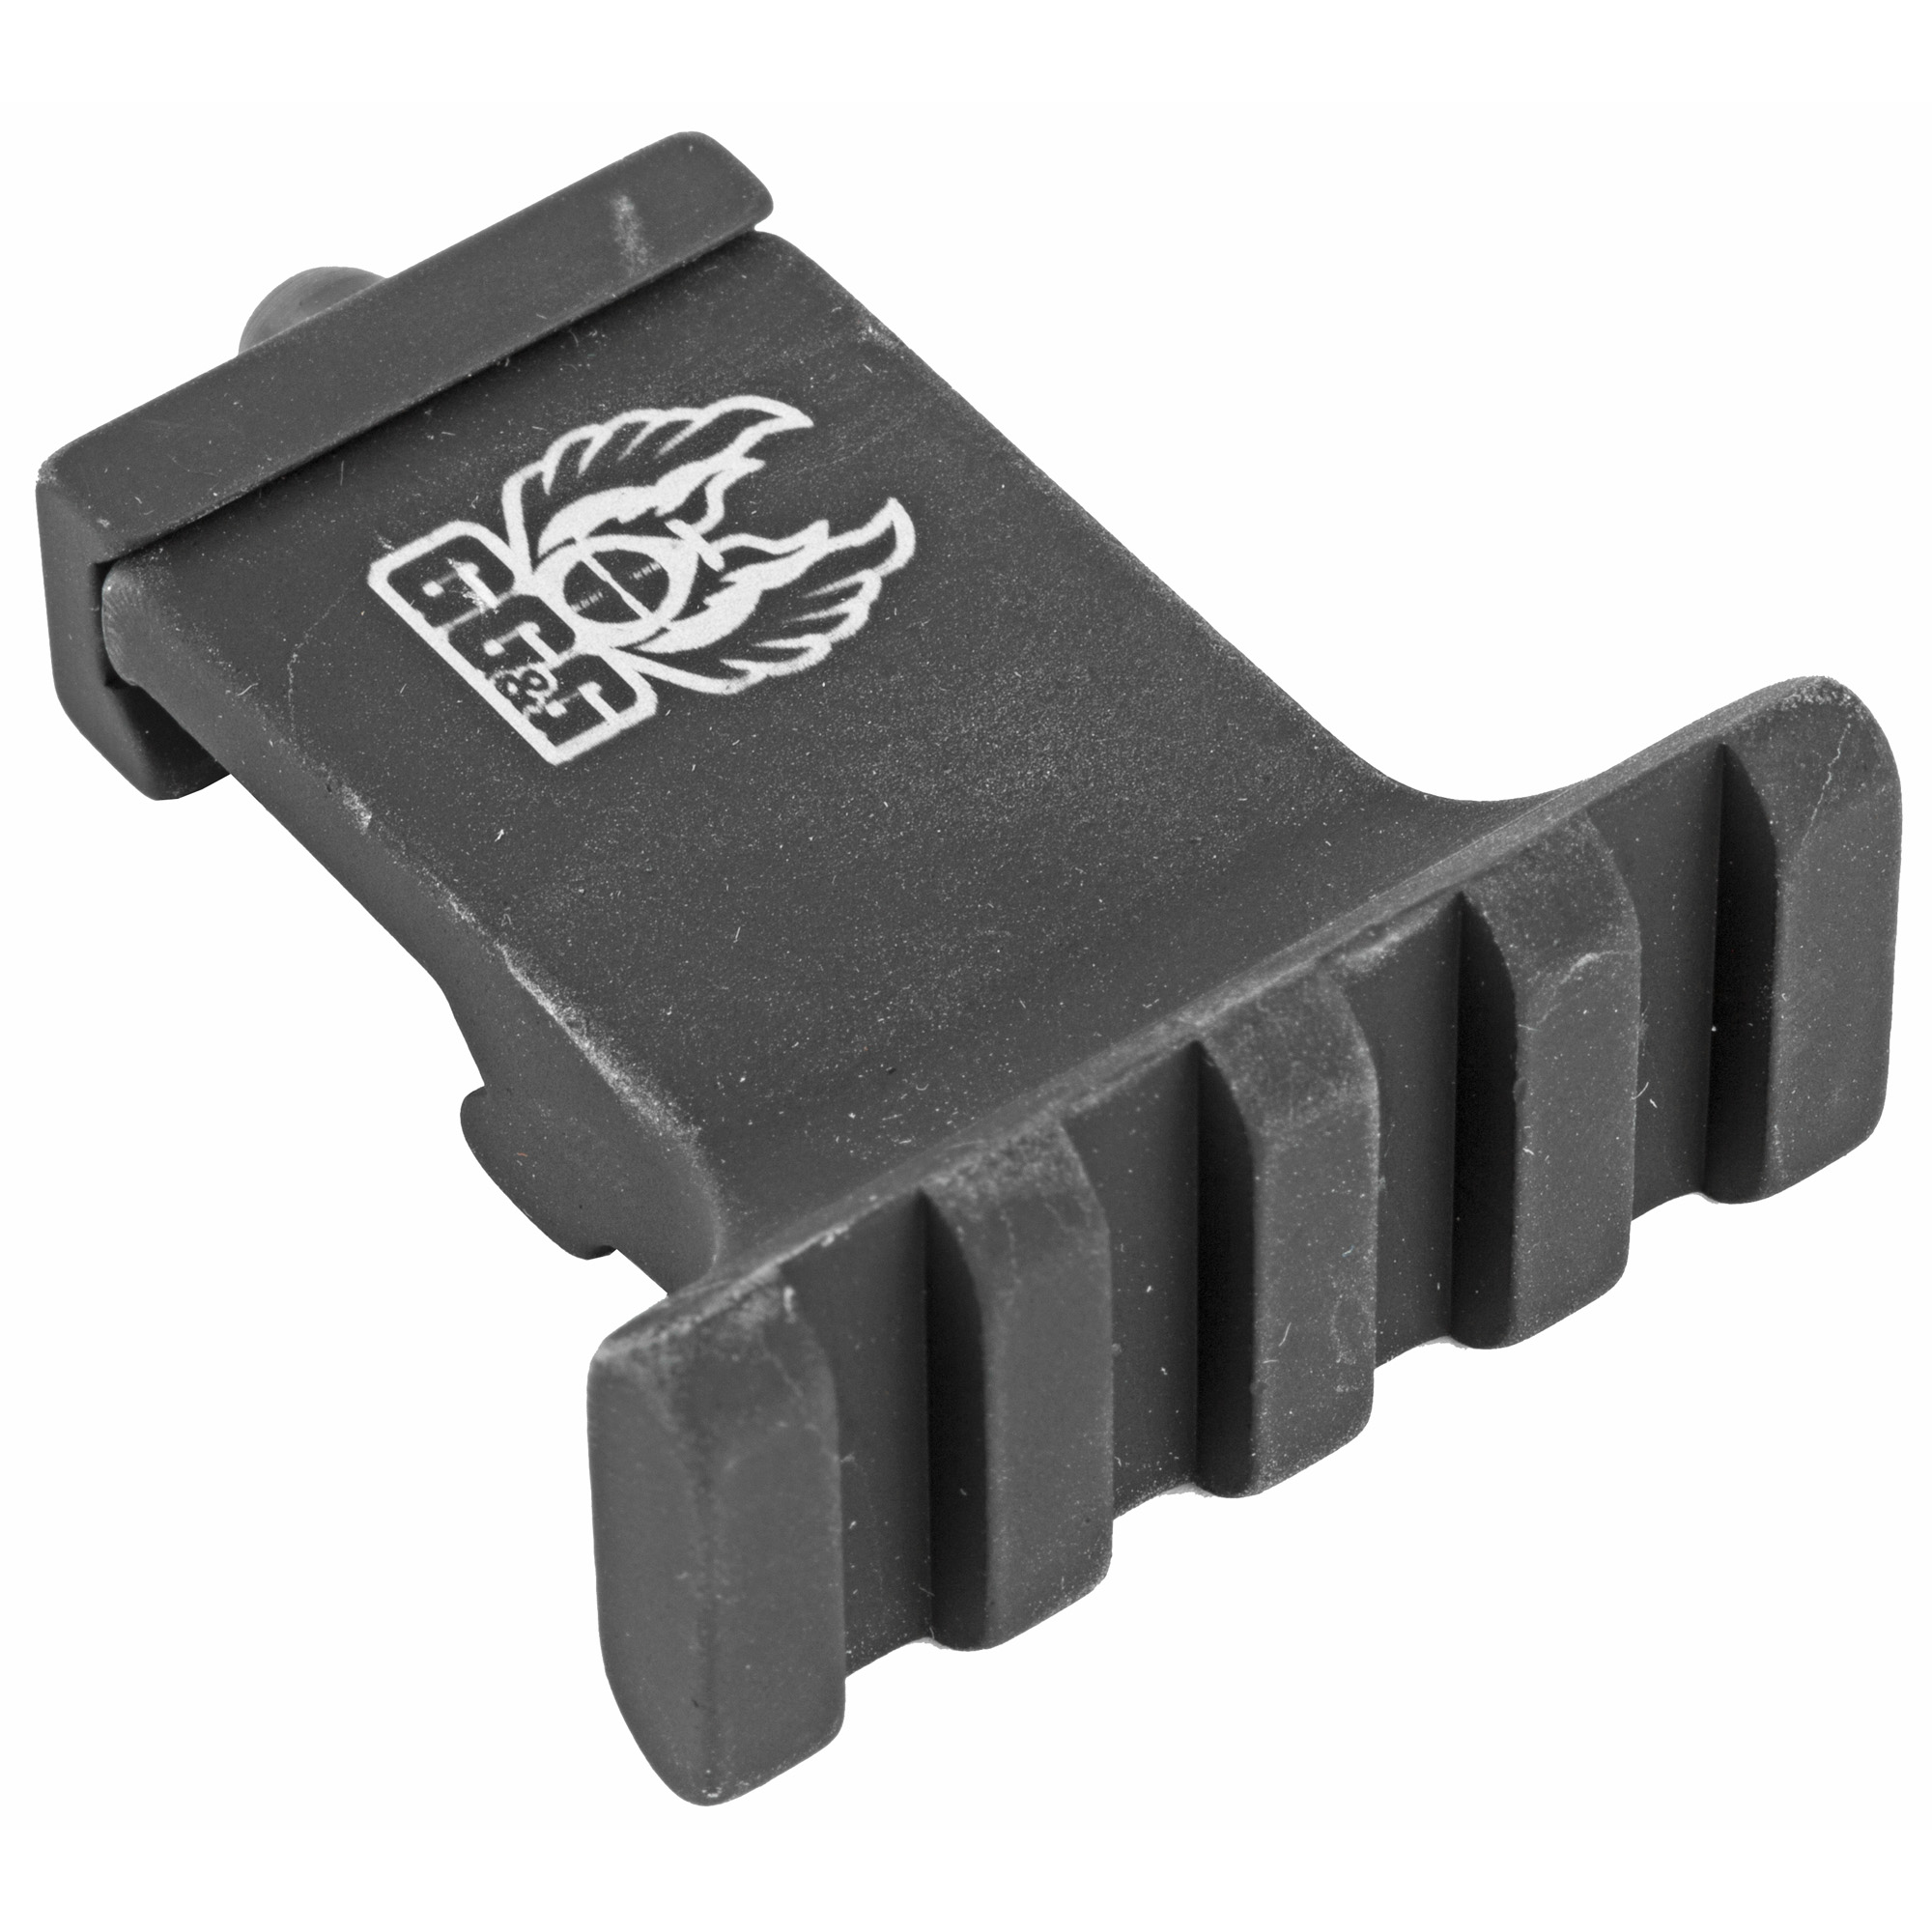 """GG&G's AR-15 Offset Tactical Flashlight Mount places the tactical flashlight"""" offset to the right or left of the weapon's forearm at about 5 o'clock or 7 o'clock"""" respectively. This permits the operator to manipulate with the thumb"""" the illuminator's rocker switch laser button or rear pressure button of other tactical flashlights"""" while the support hand remains solidly on the vertical foregrip. This tactical light mount comes complete with both the Glock style and MIL-STD-1913 Picatinny rails. The Glock style rail can be easily removed and a short section of MIL-STD-1913 rail installed for attaching a Surefire or other small flashlight by means of a standard ring. The mounting rails are fully interchangeable. It is a lightweight accessory at only 2.7 ounces."""